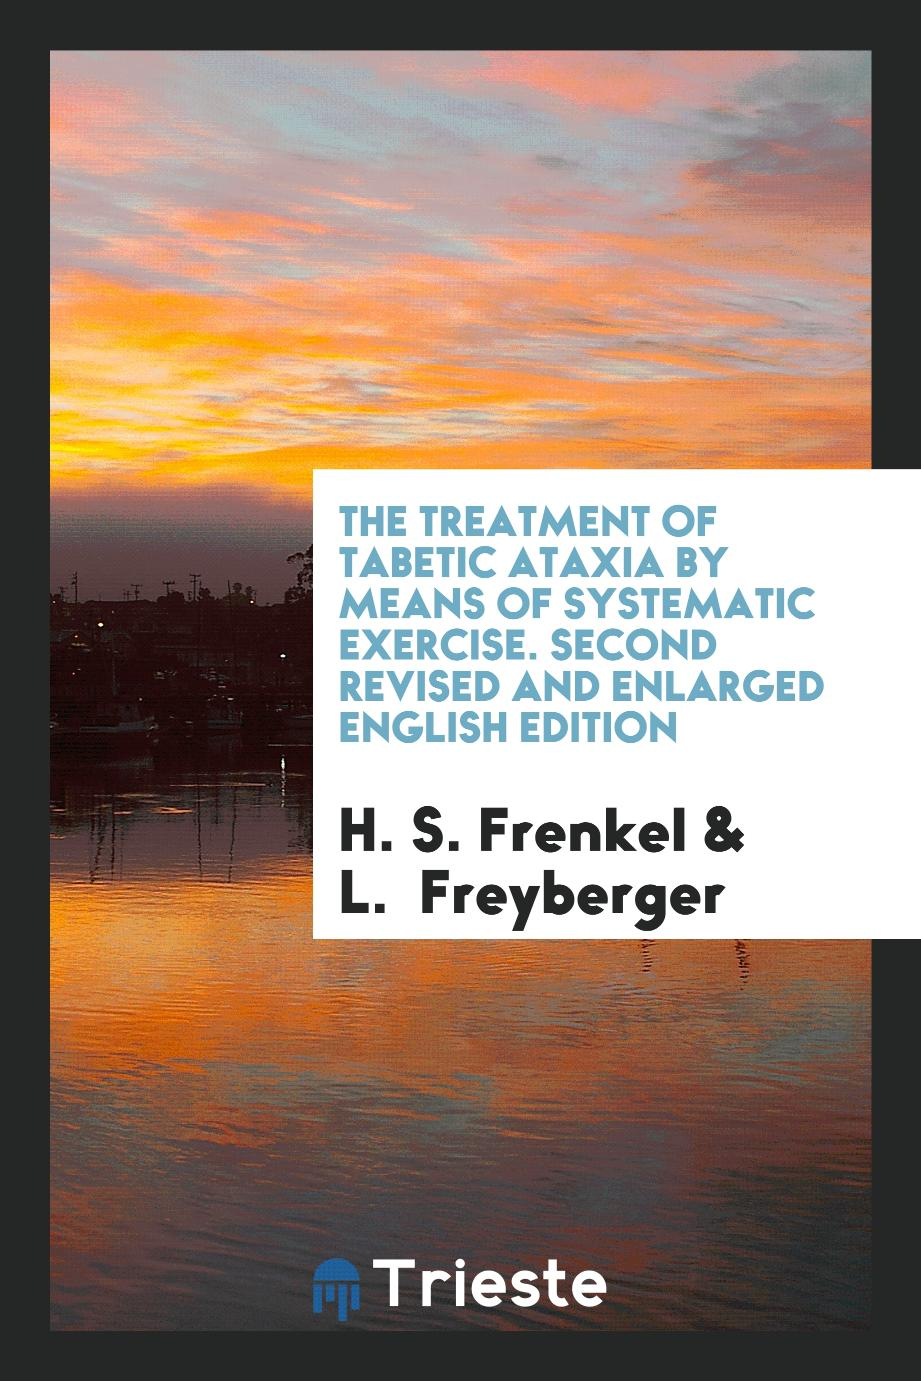 The Treatment of Tabetic Ataxia by Means of Systematic Exercise. Second Revised and Enlarged English Edition